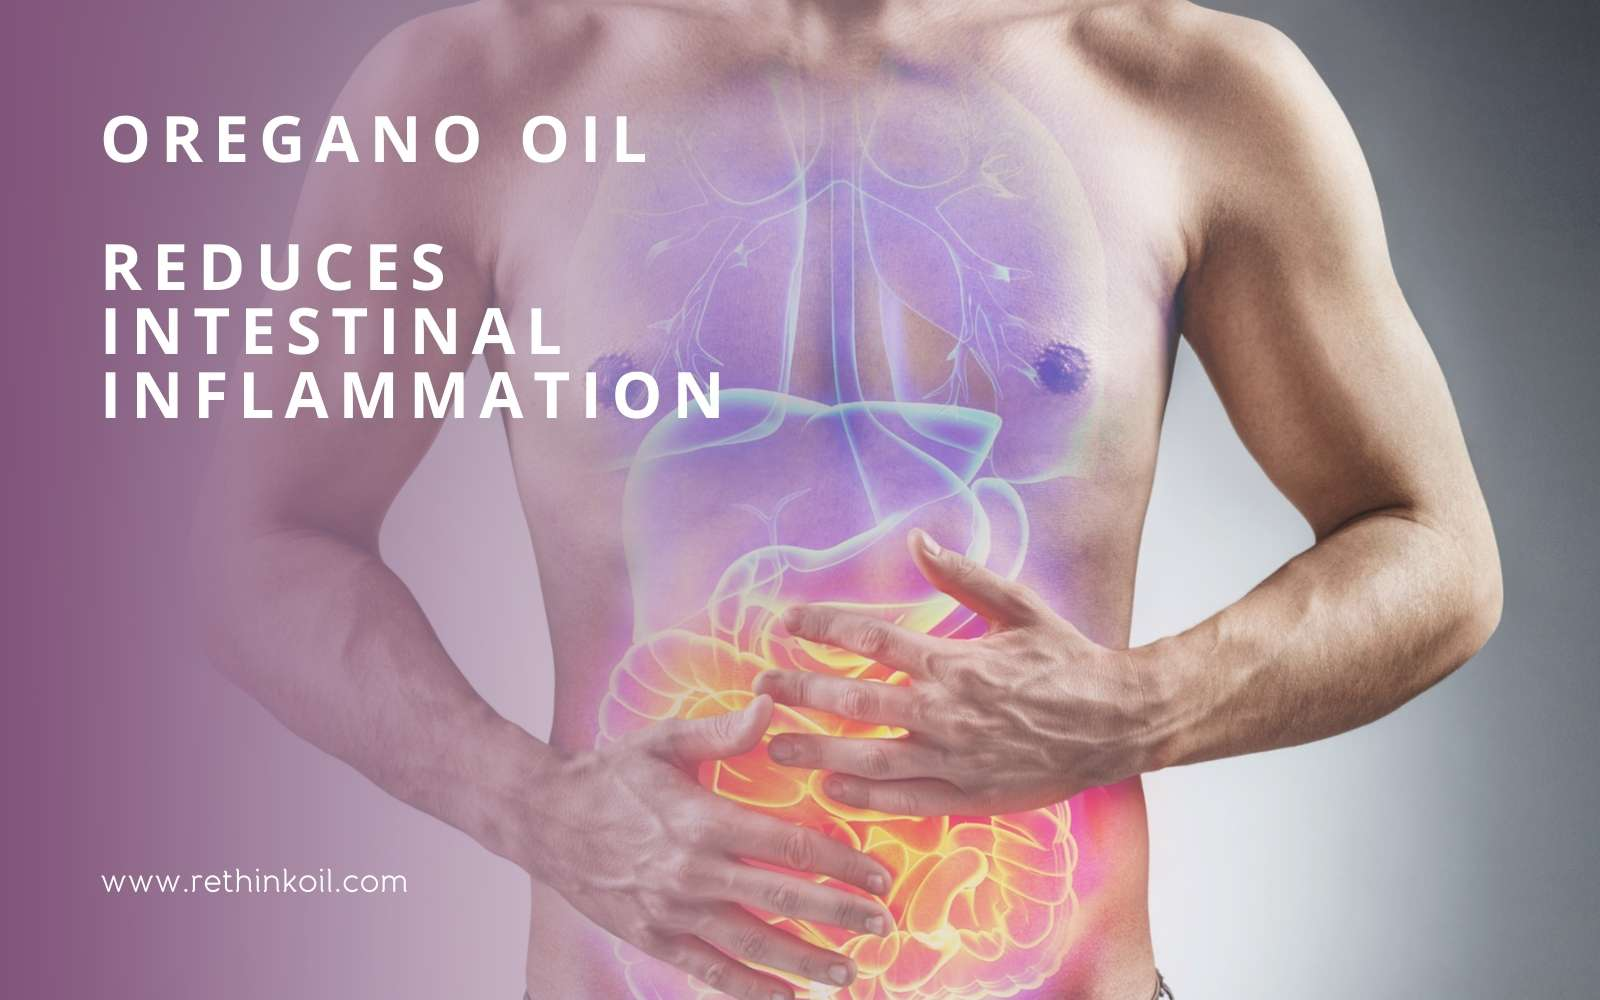 ReThinkOil Blog Oregano Oil Reduces Intestinal Inflammation